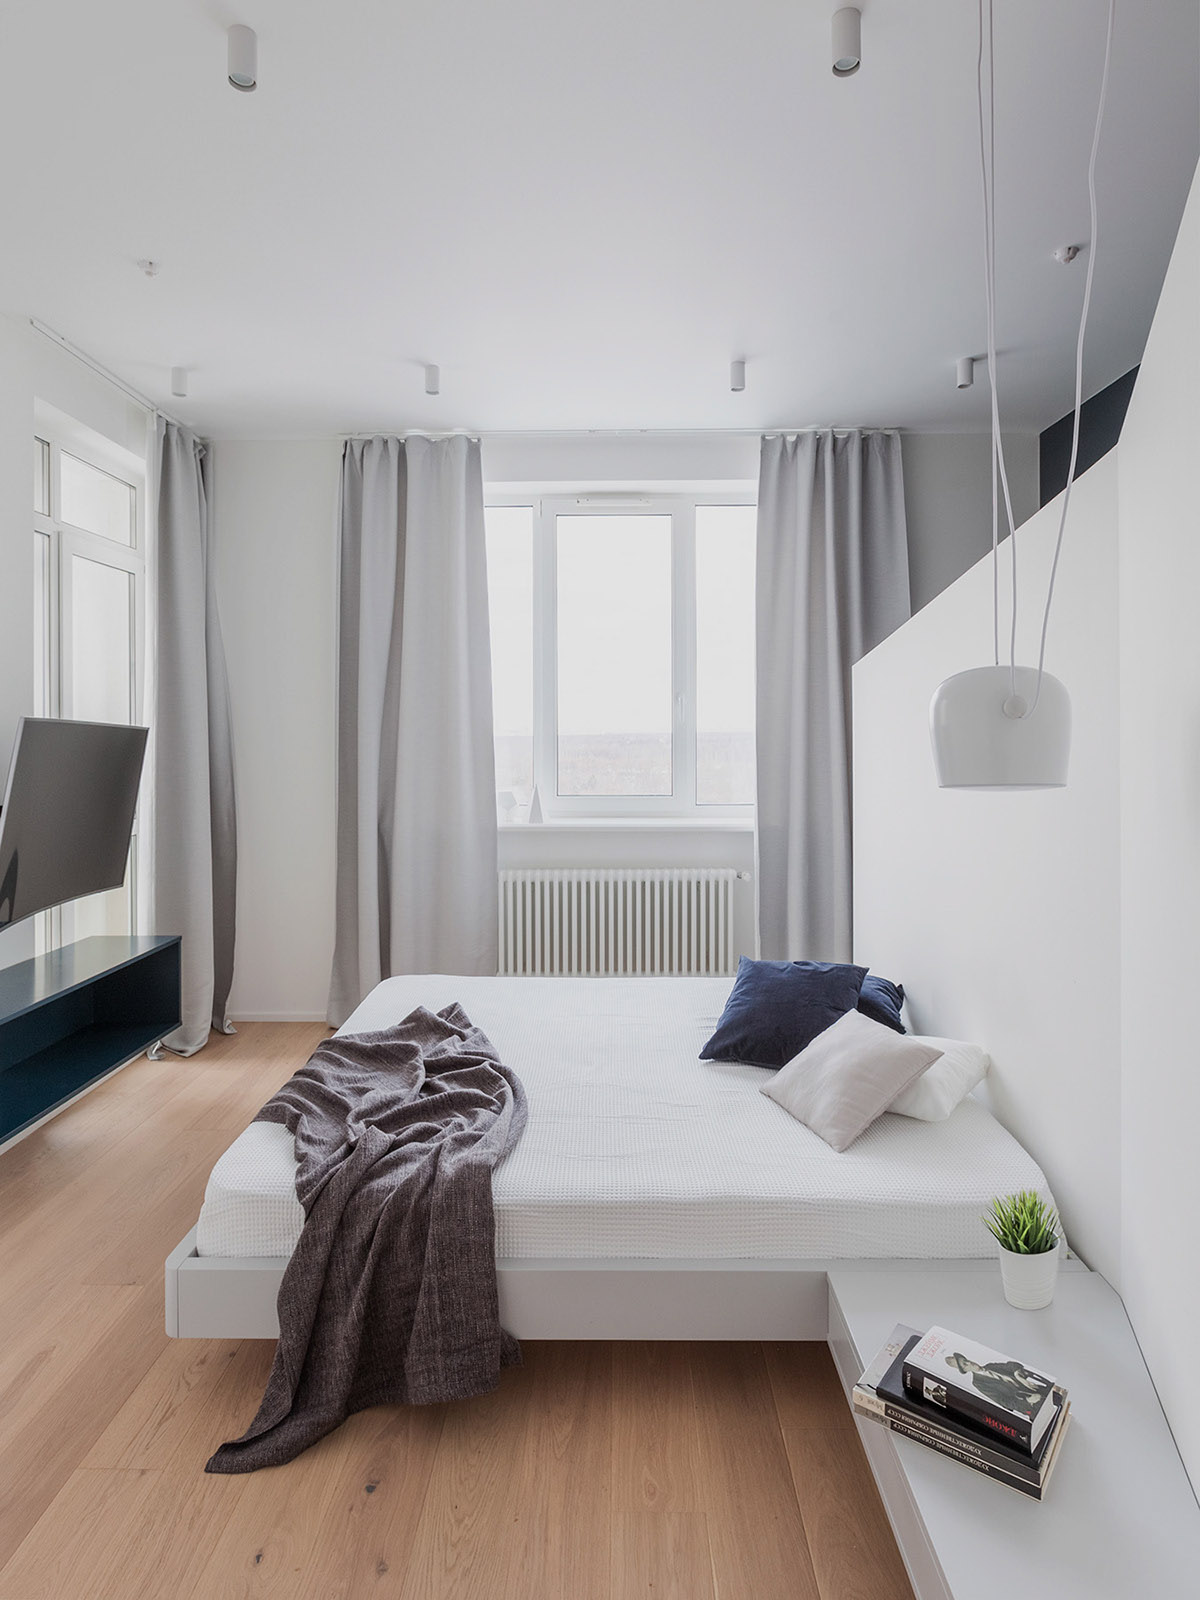 An Apartment With A Complex Geometry images 13